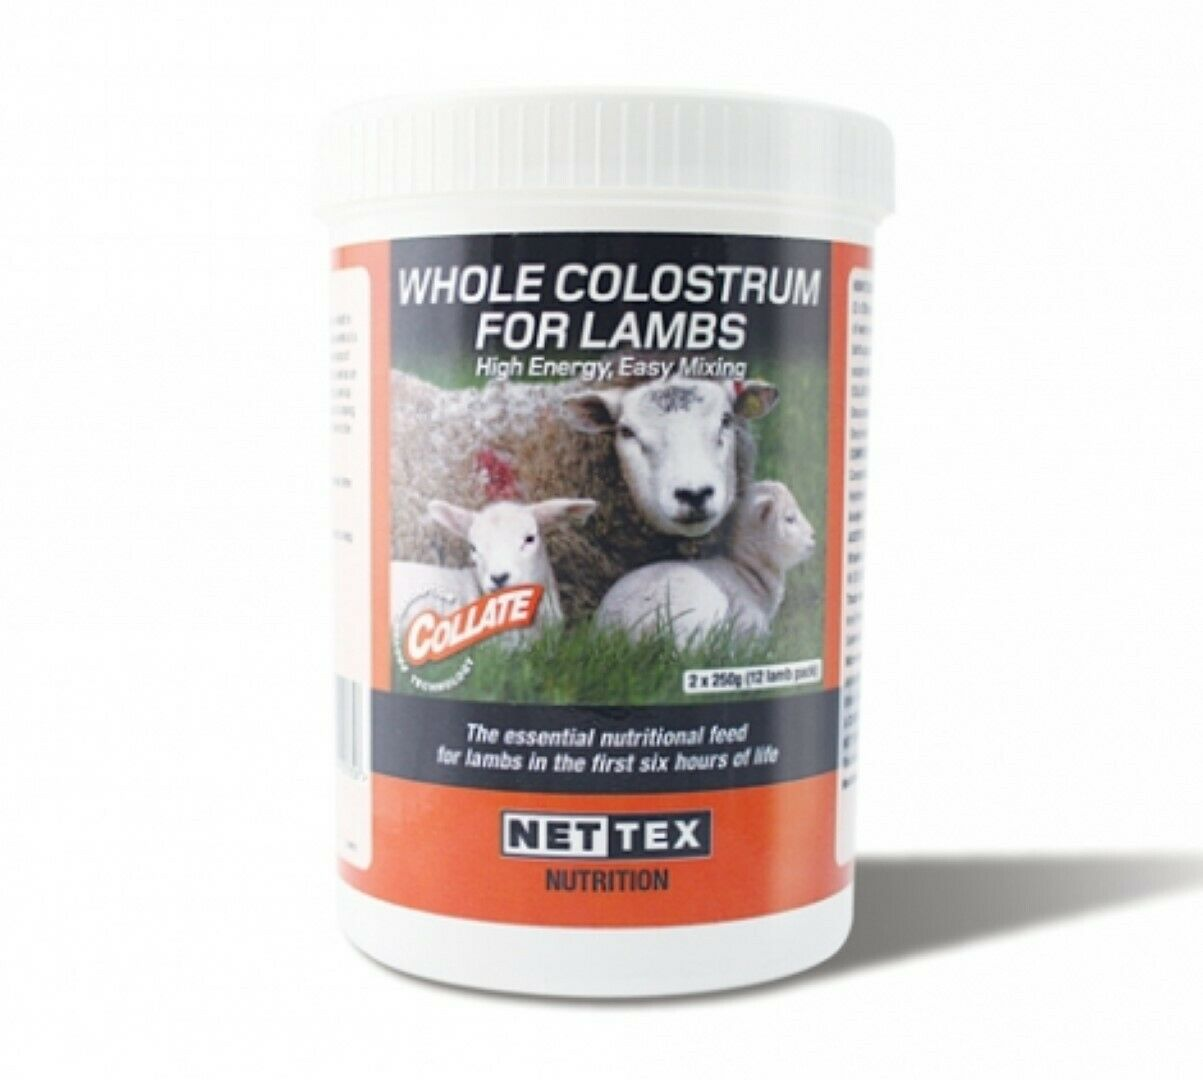 Whole Colostrum For Lambs Collate High instant Energy 10 x 40g